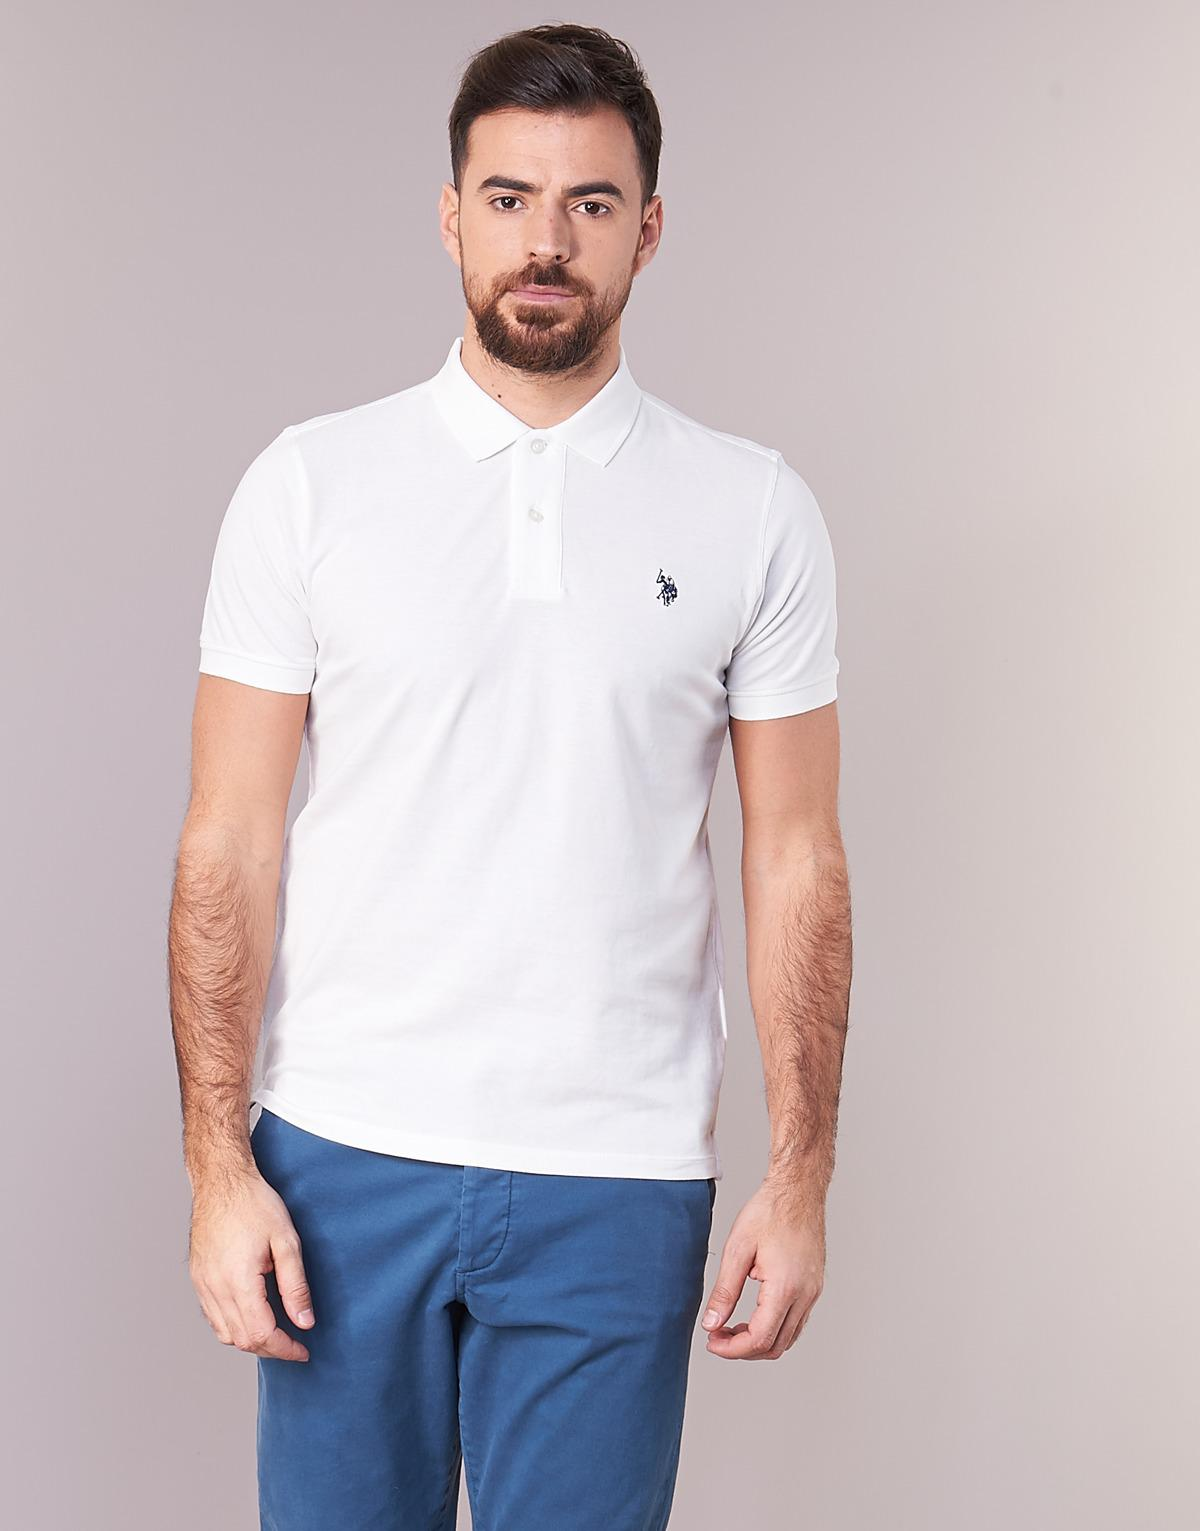 Us Polo Assn Institutional Polo Mens Polo Shirt In White In